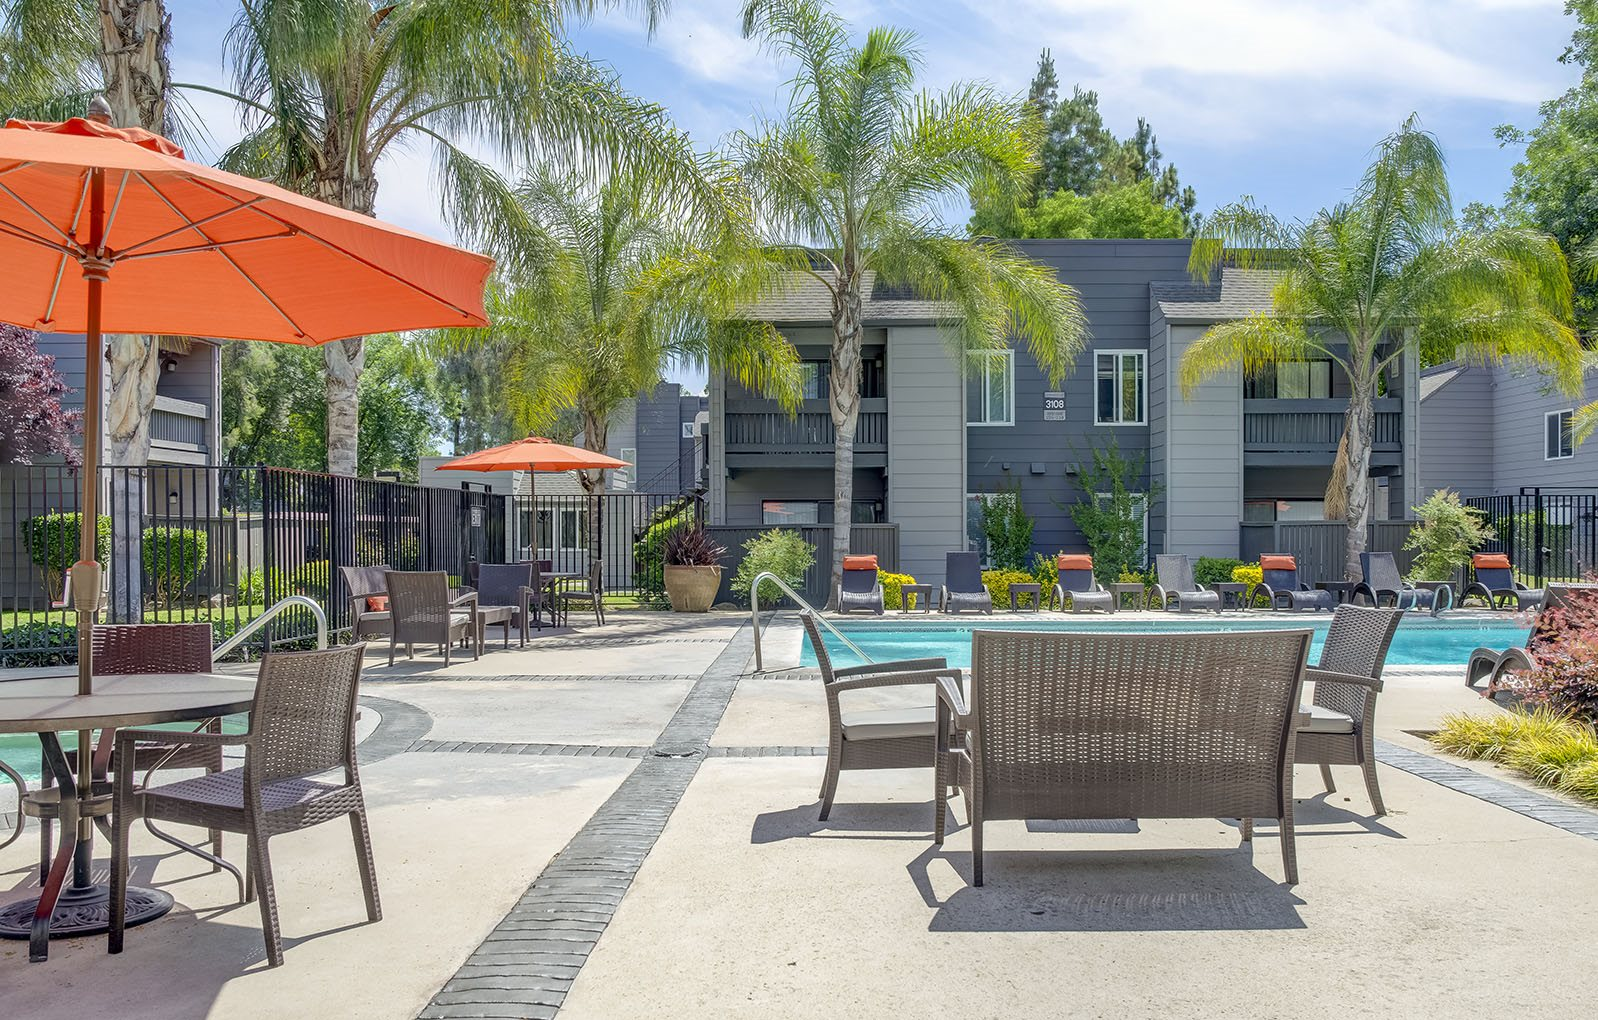 Poolside Lounge and Tables | at Stoneybrook Apartments | Modesto, CA